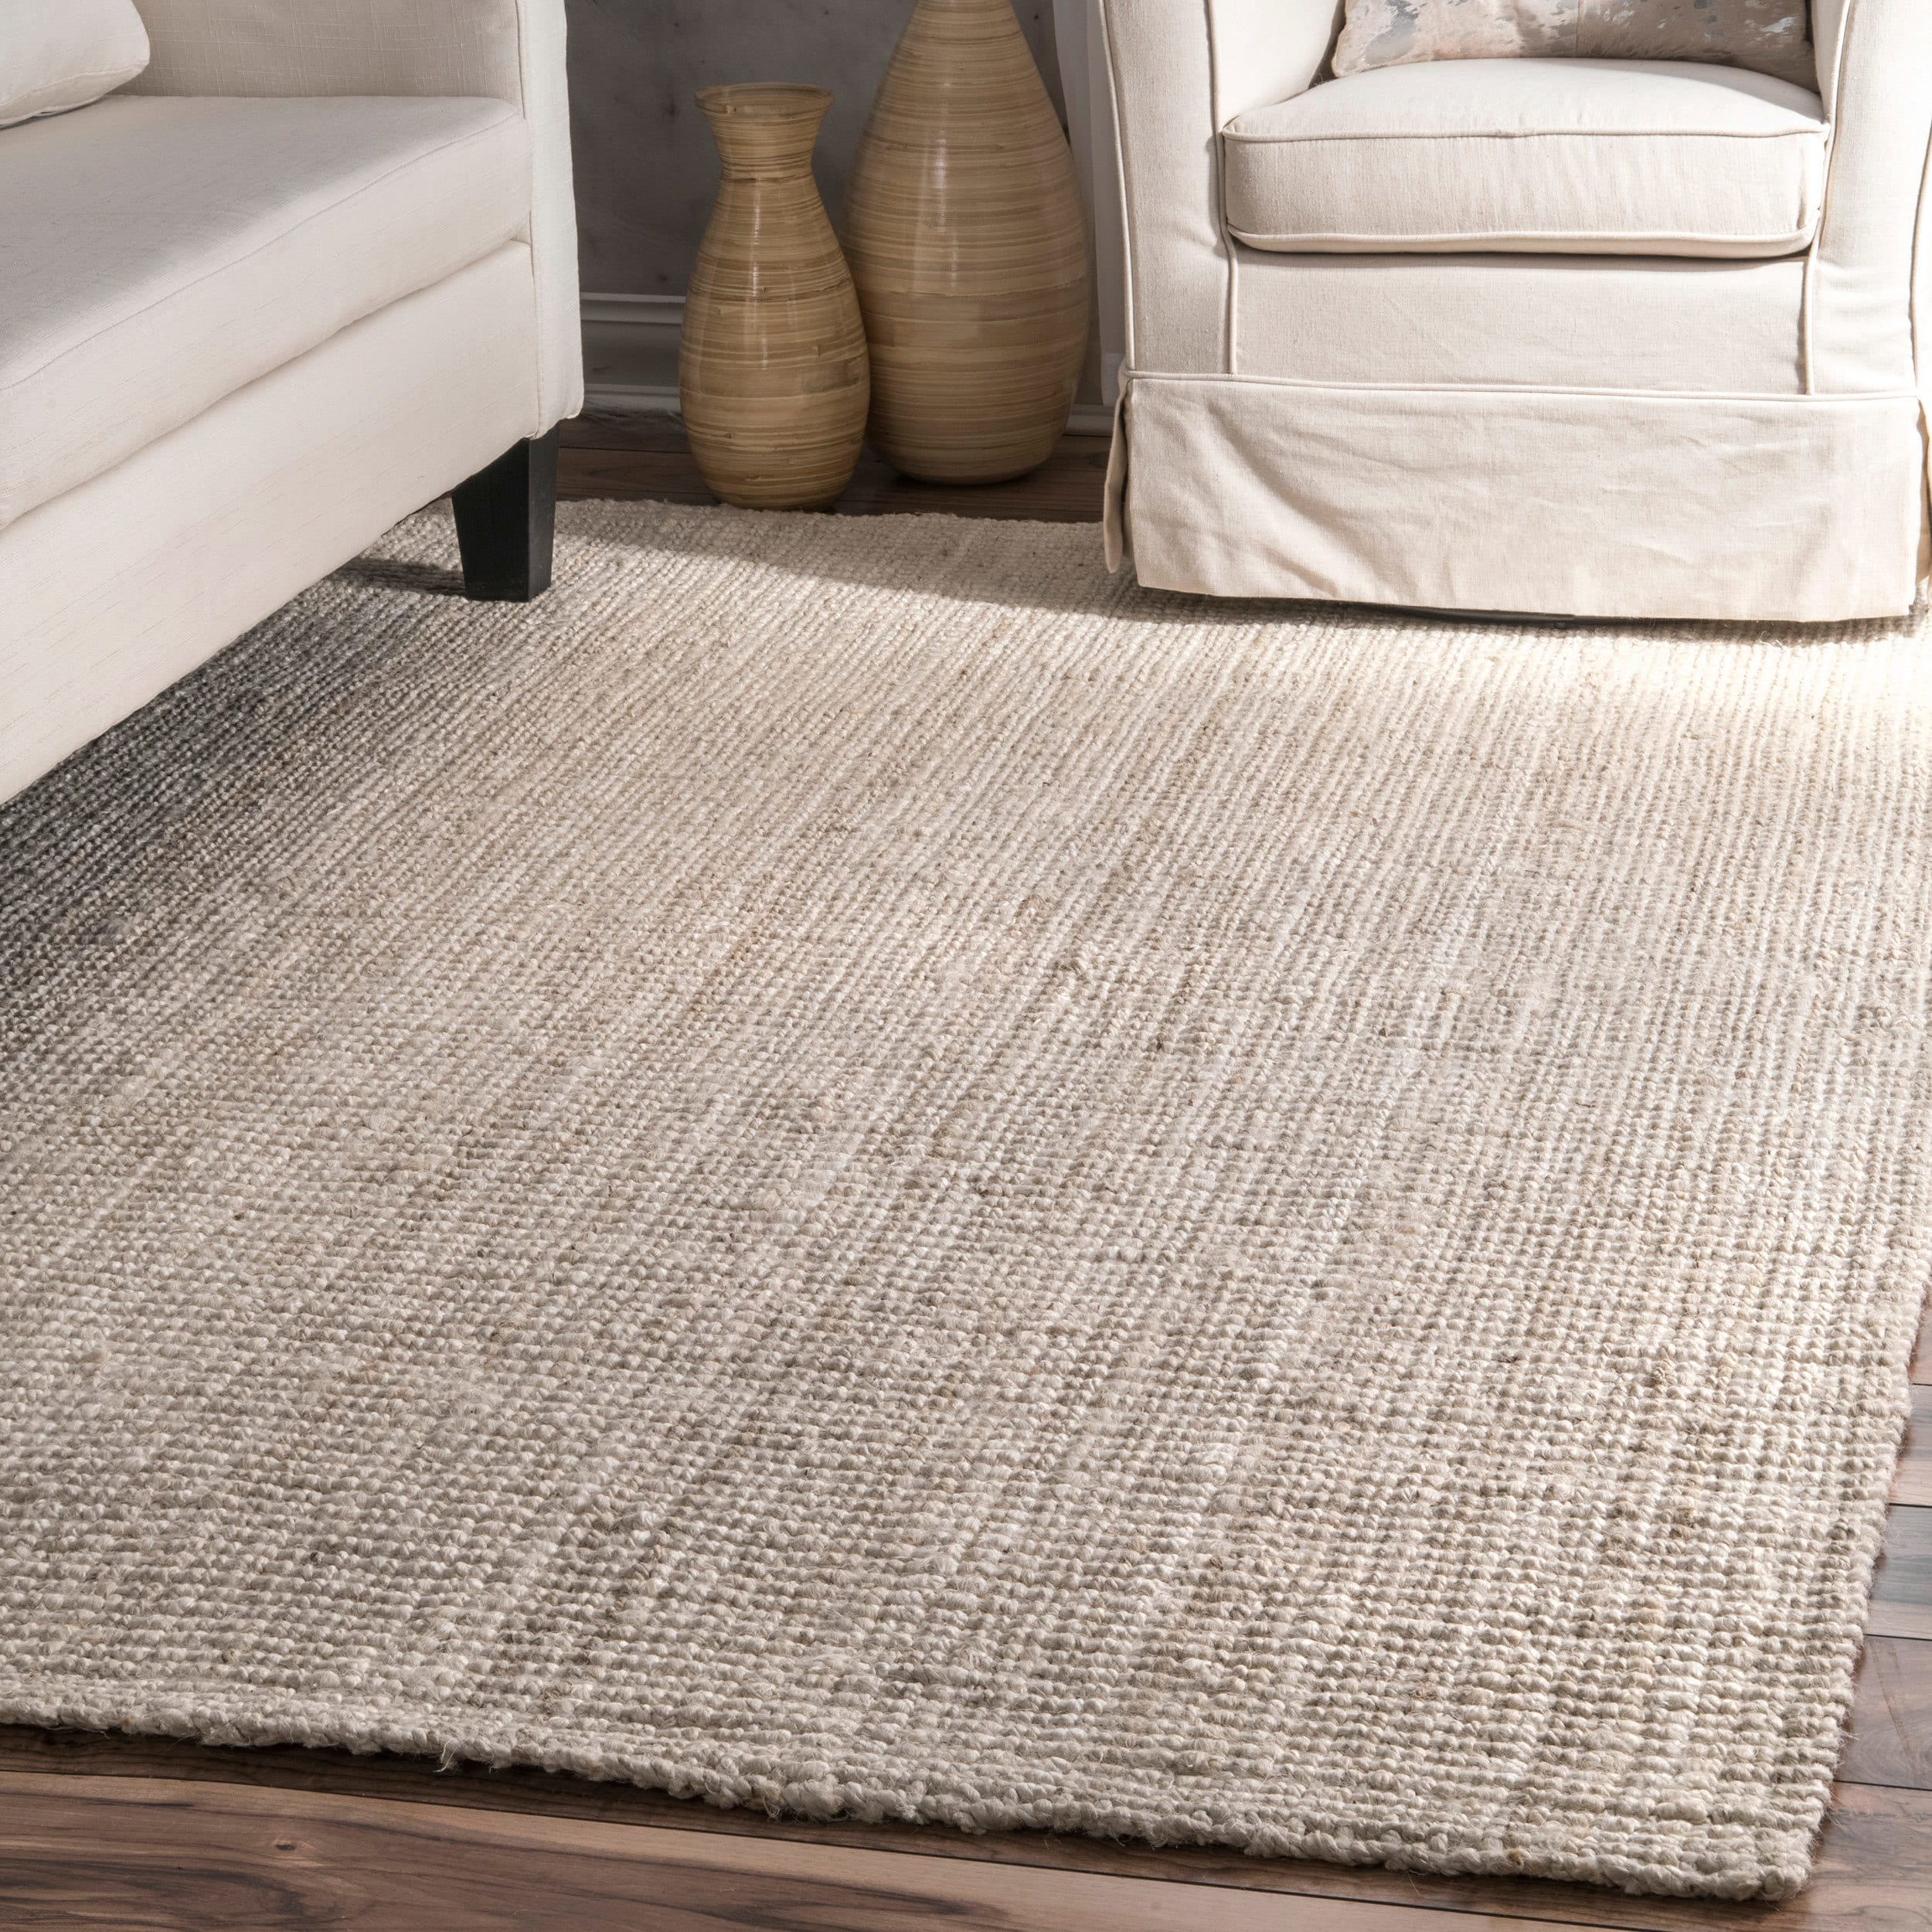 Havenside Home Coopers Hand Woven Natural Fiber Jute Sisal Ribbed Solid Bleached Area Rug